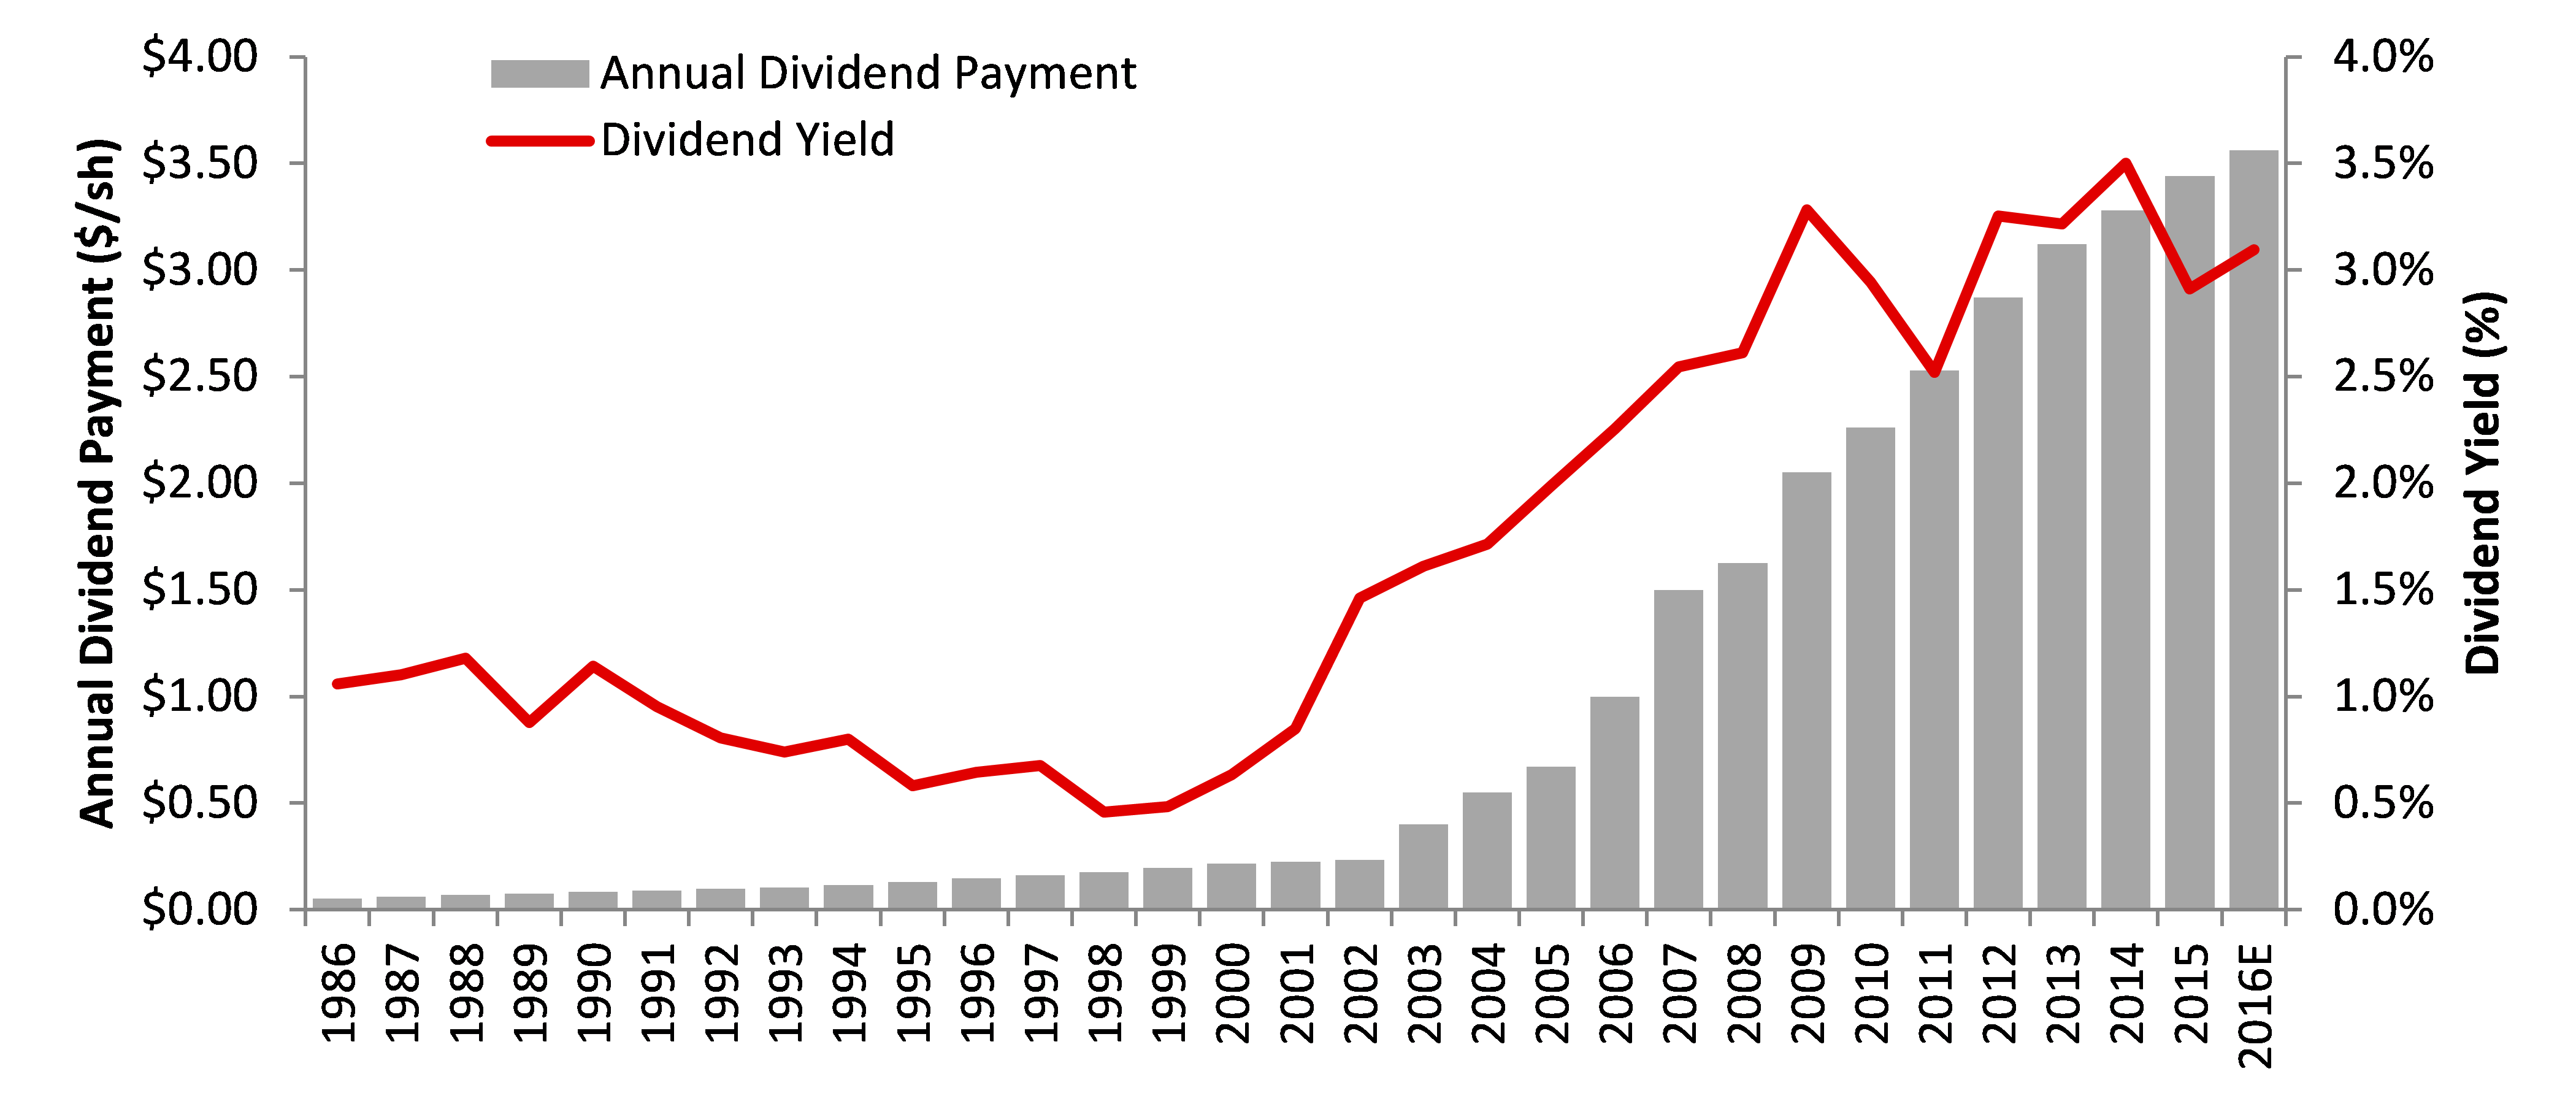 McDonalds Dividend History